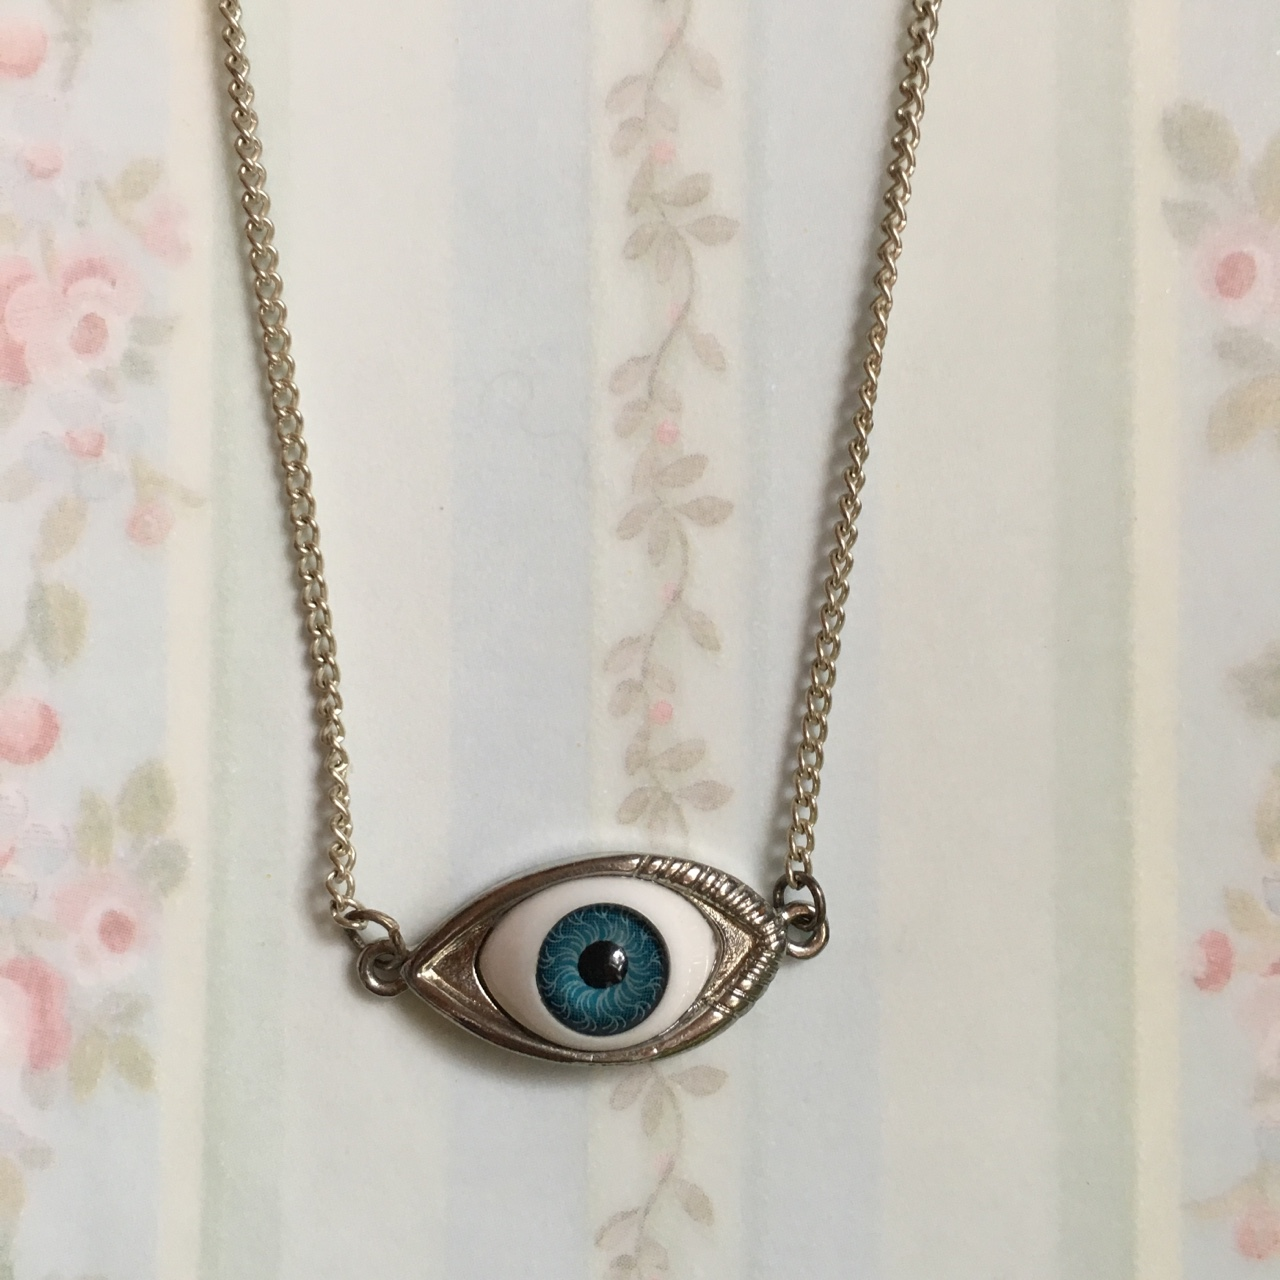 👁👁👁 Eye Necklace 👁👁👁 Super Quirky And Unique!   Depop by Depop